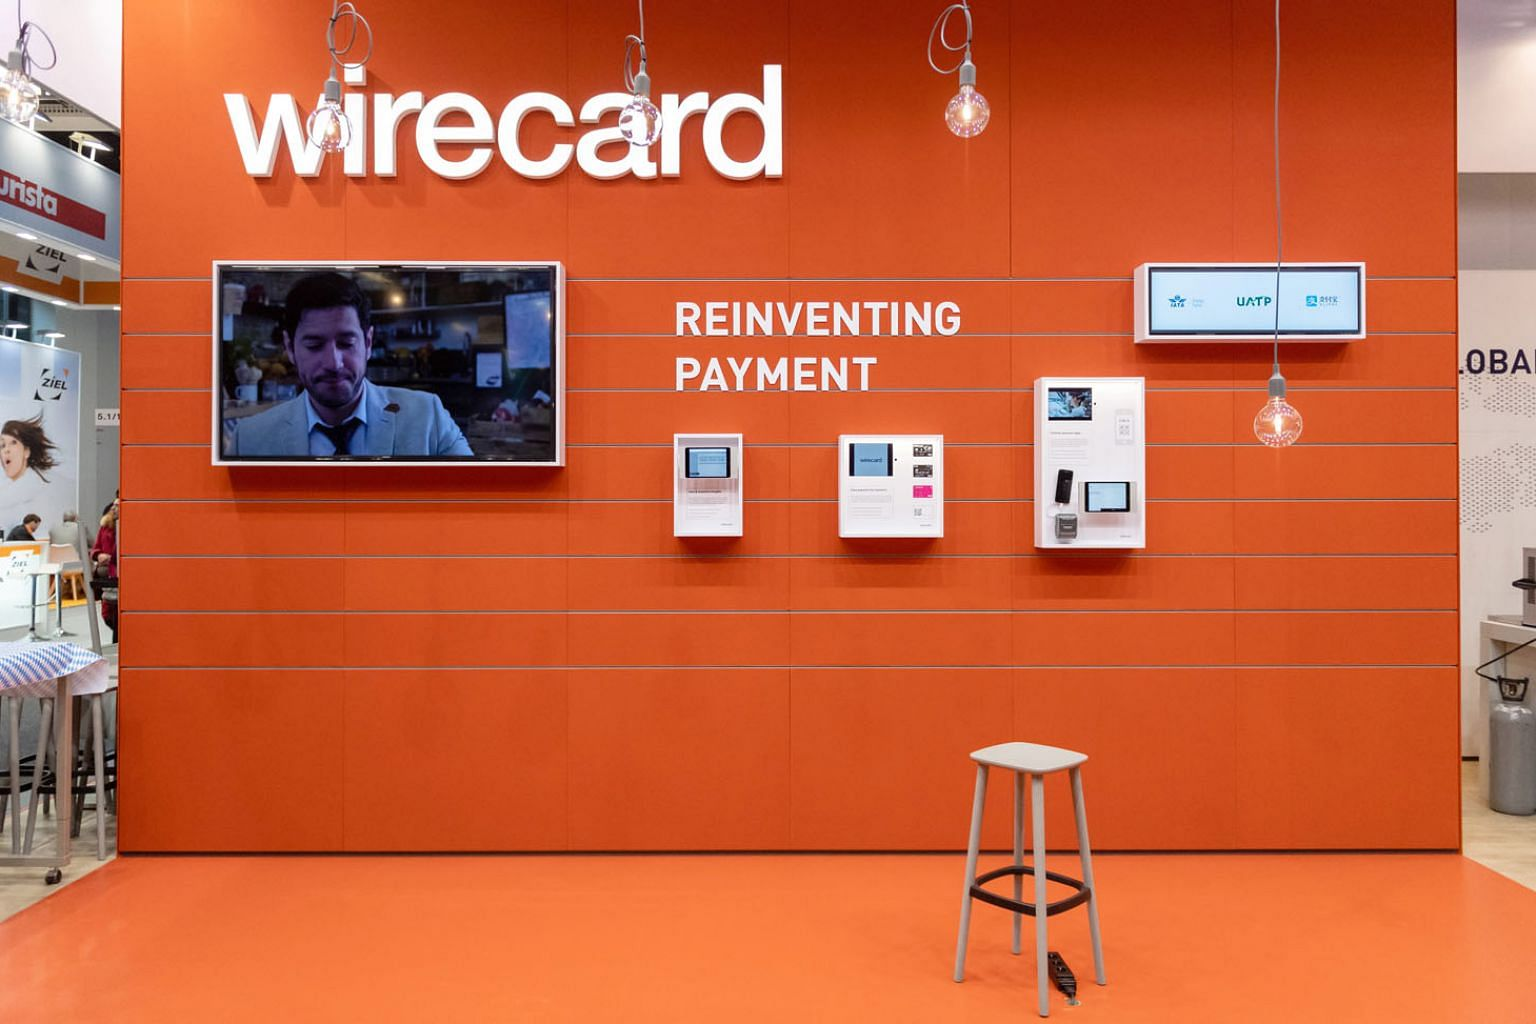 German payment processor Wirecard says in its preliminary first-quarter earnings statement that it expects its earnings before interest, taxes, depreciation and amortisation to be €1 billion (S$1.54 billion) to €1.2 billion this year. The full fi